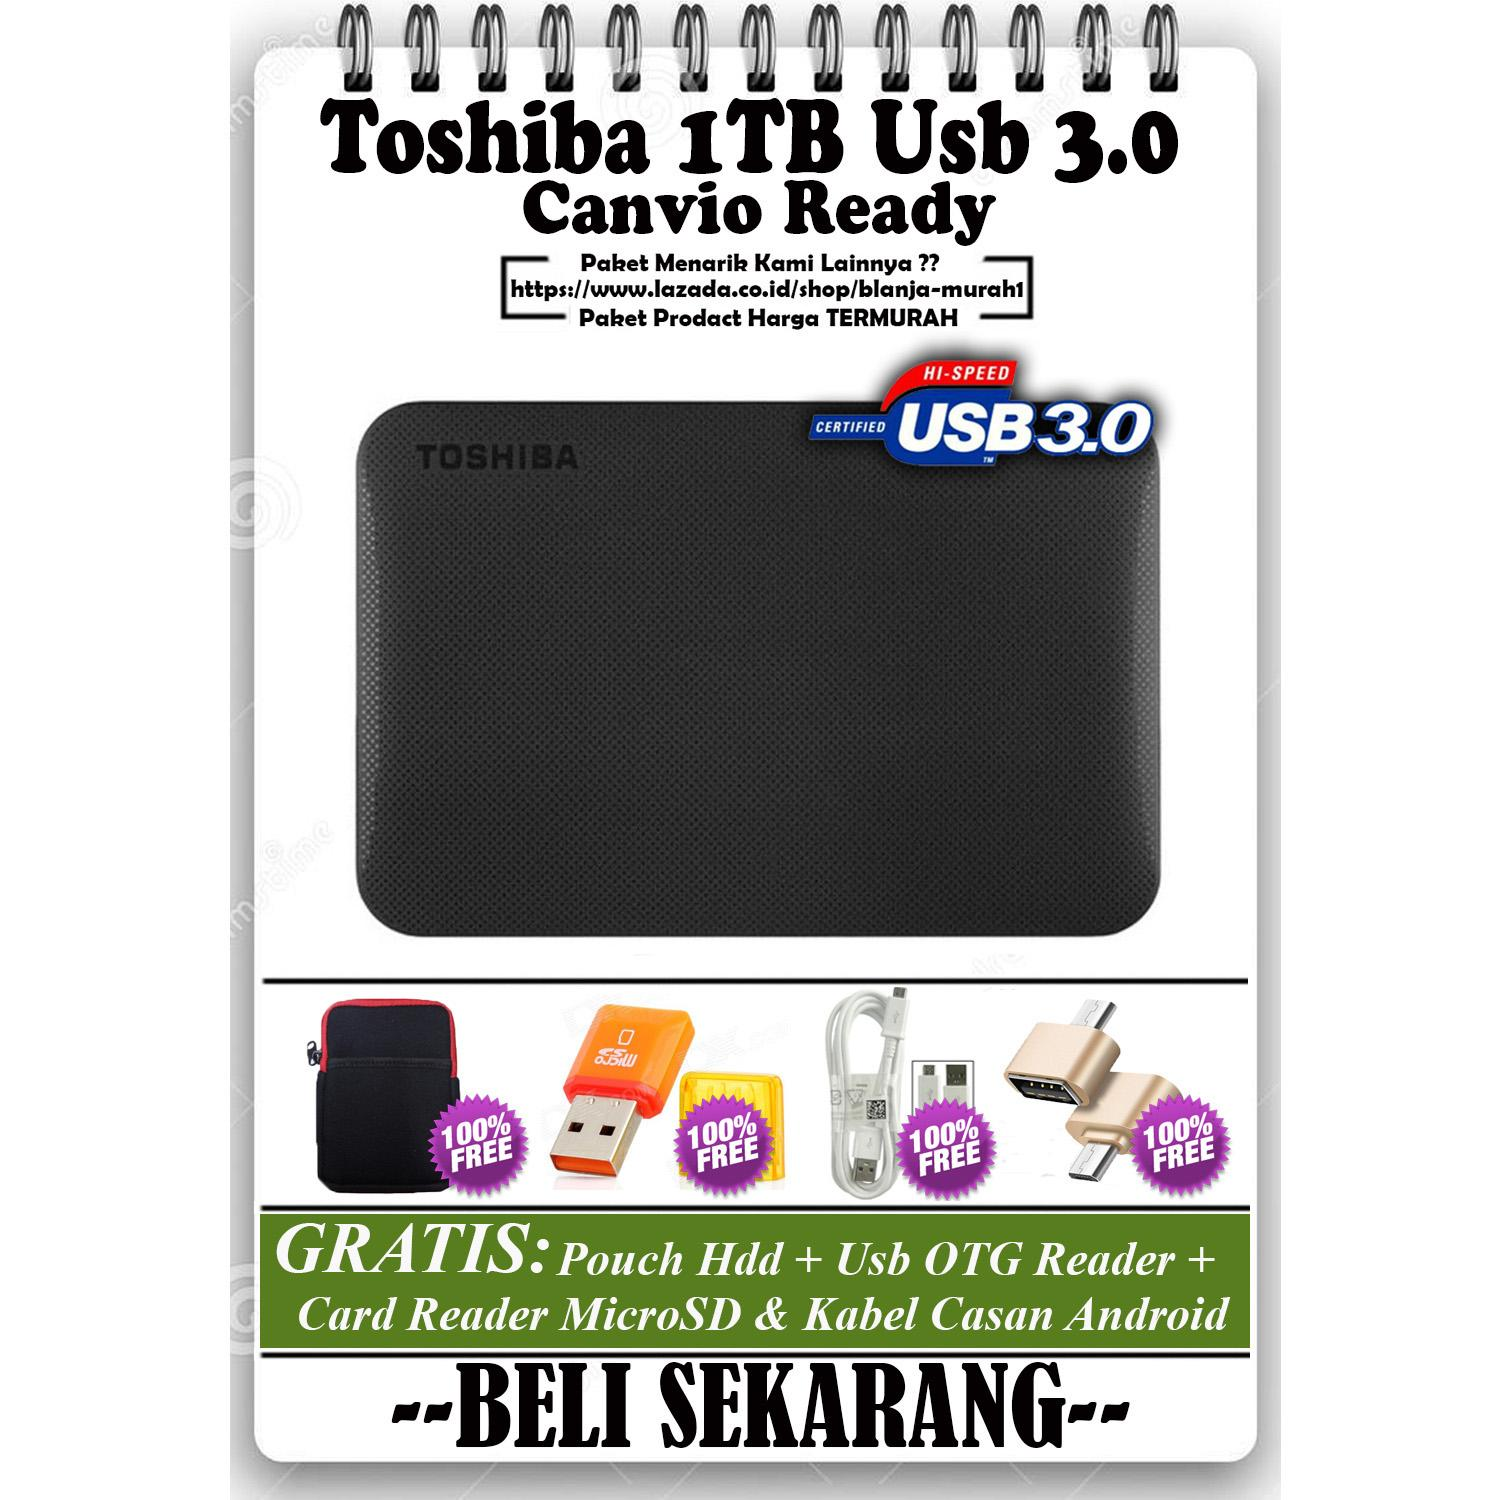 Toshiba Canvio Ready 1TB Harddisk External - GRATIS Pouch Harddisk + Kabel Charger Casan Android + Usb OTG Reader Andorid & Card Reader MicroSD